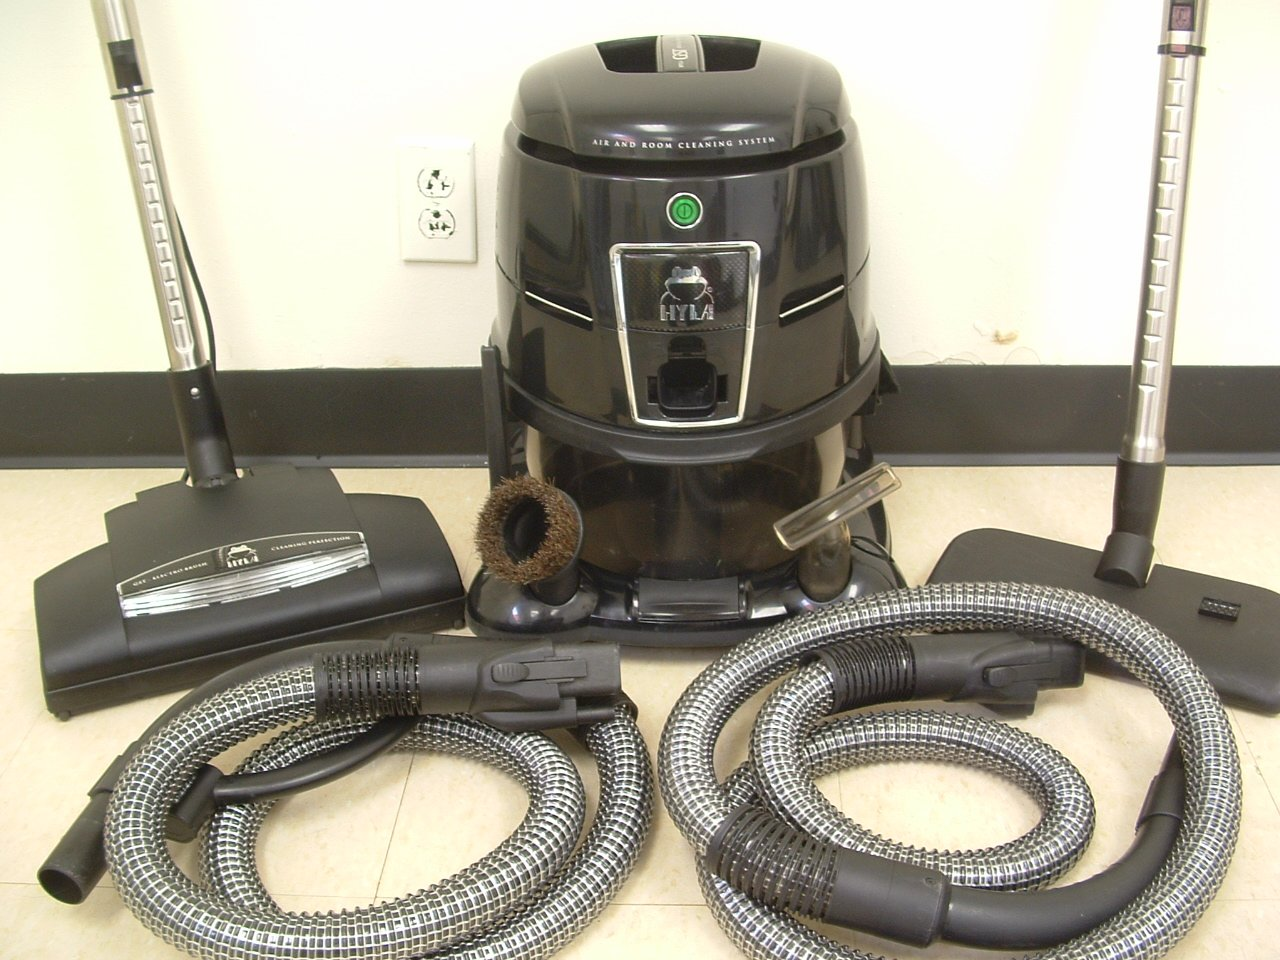 THE LATEST HYLA GST WATER FILTRATION VACUUM WITH ACCESSORIES!